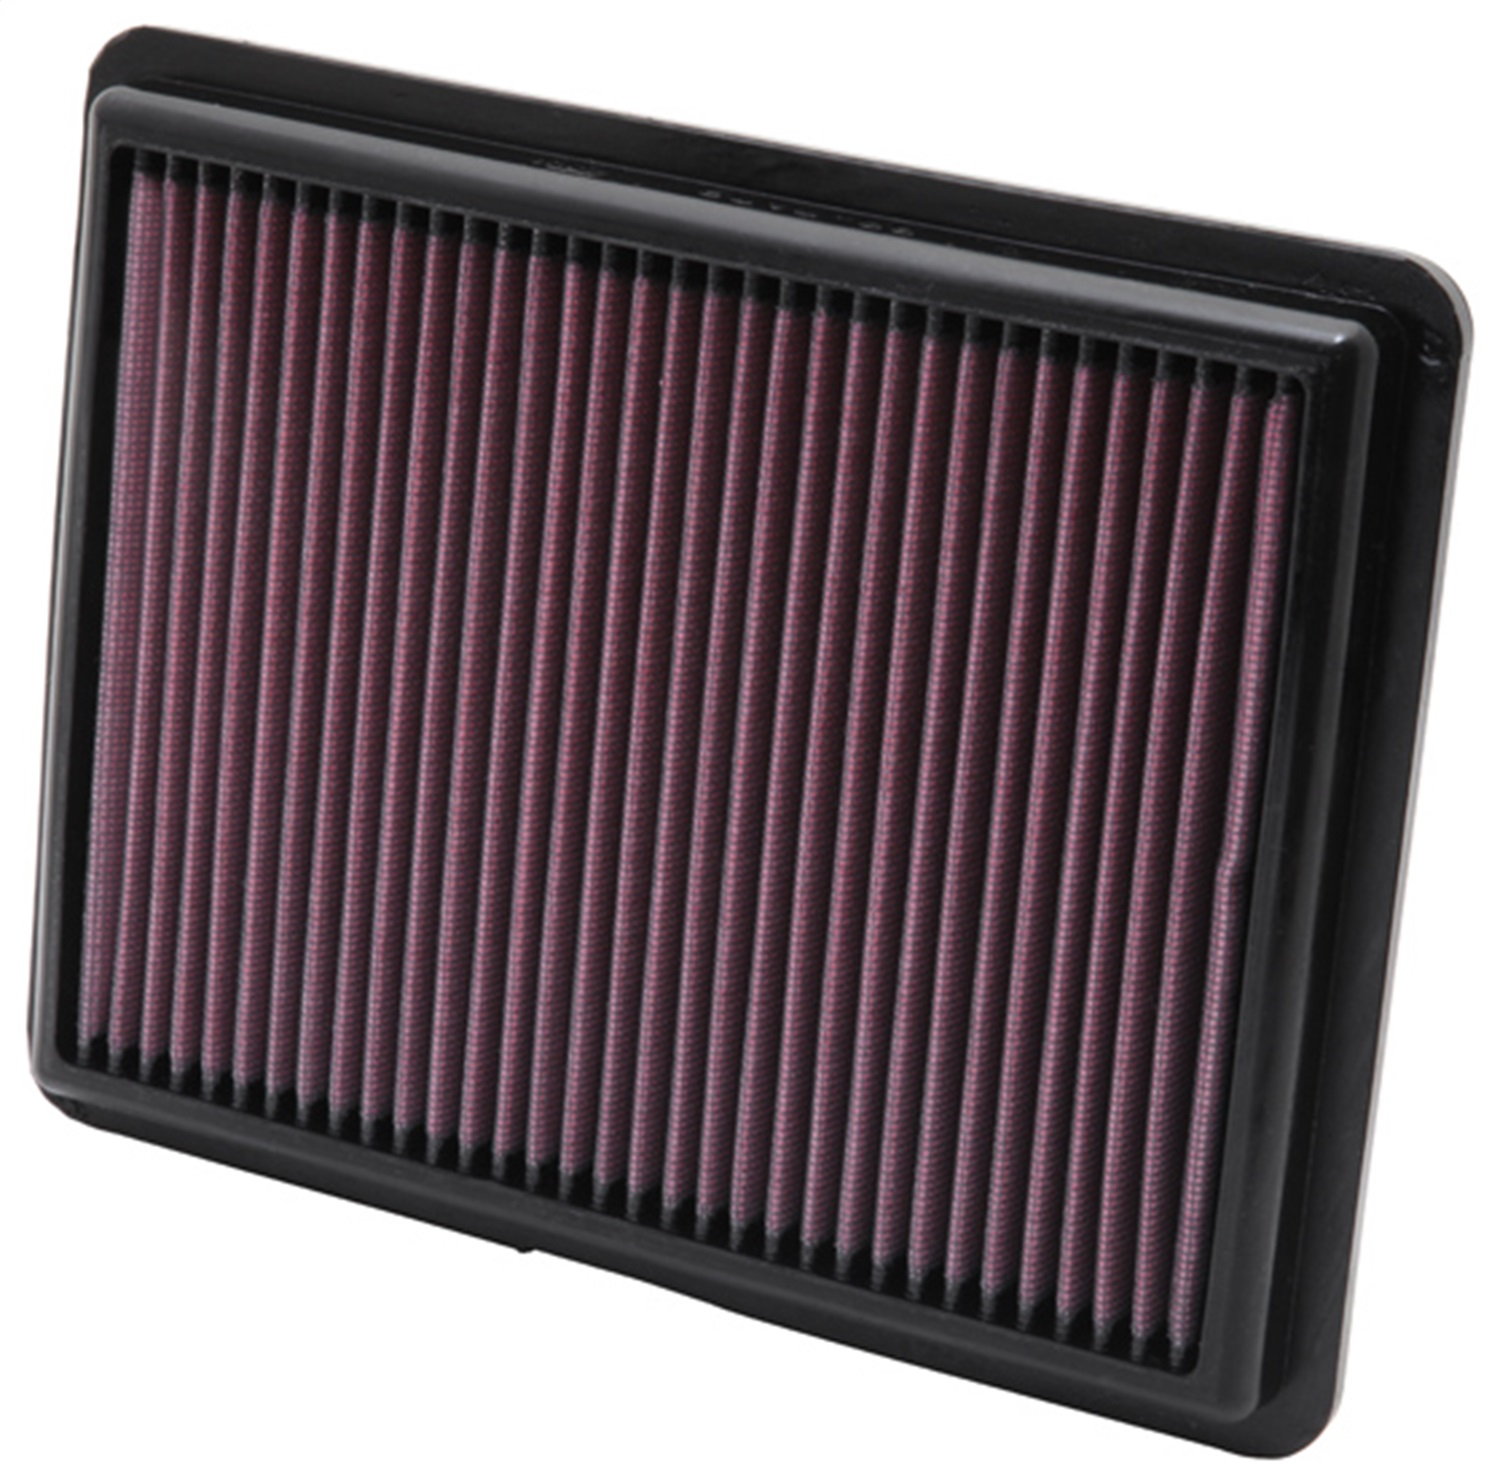 K&N Filters 33-2403 Air Filter Fits Accord Accord Crosstour Crosstour TL TSX 33-2403